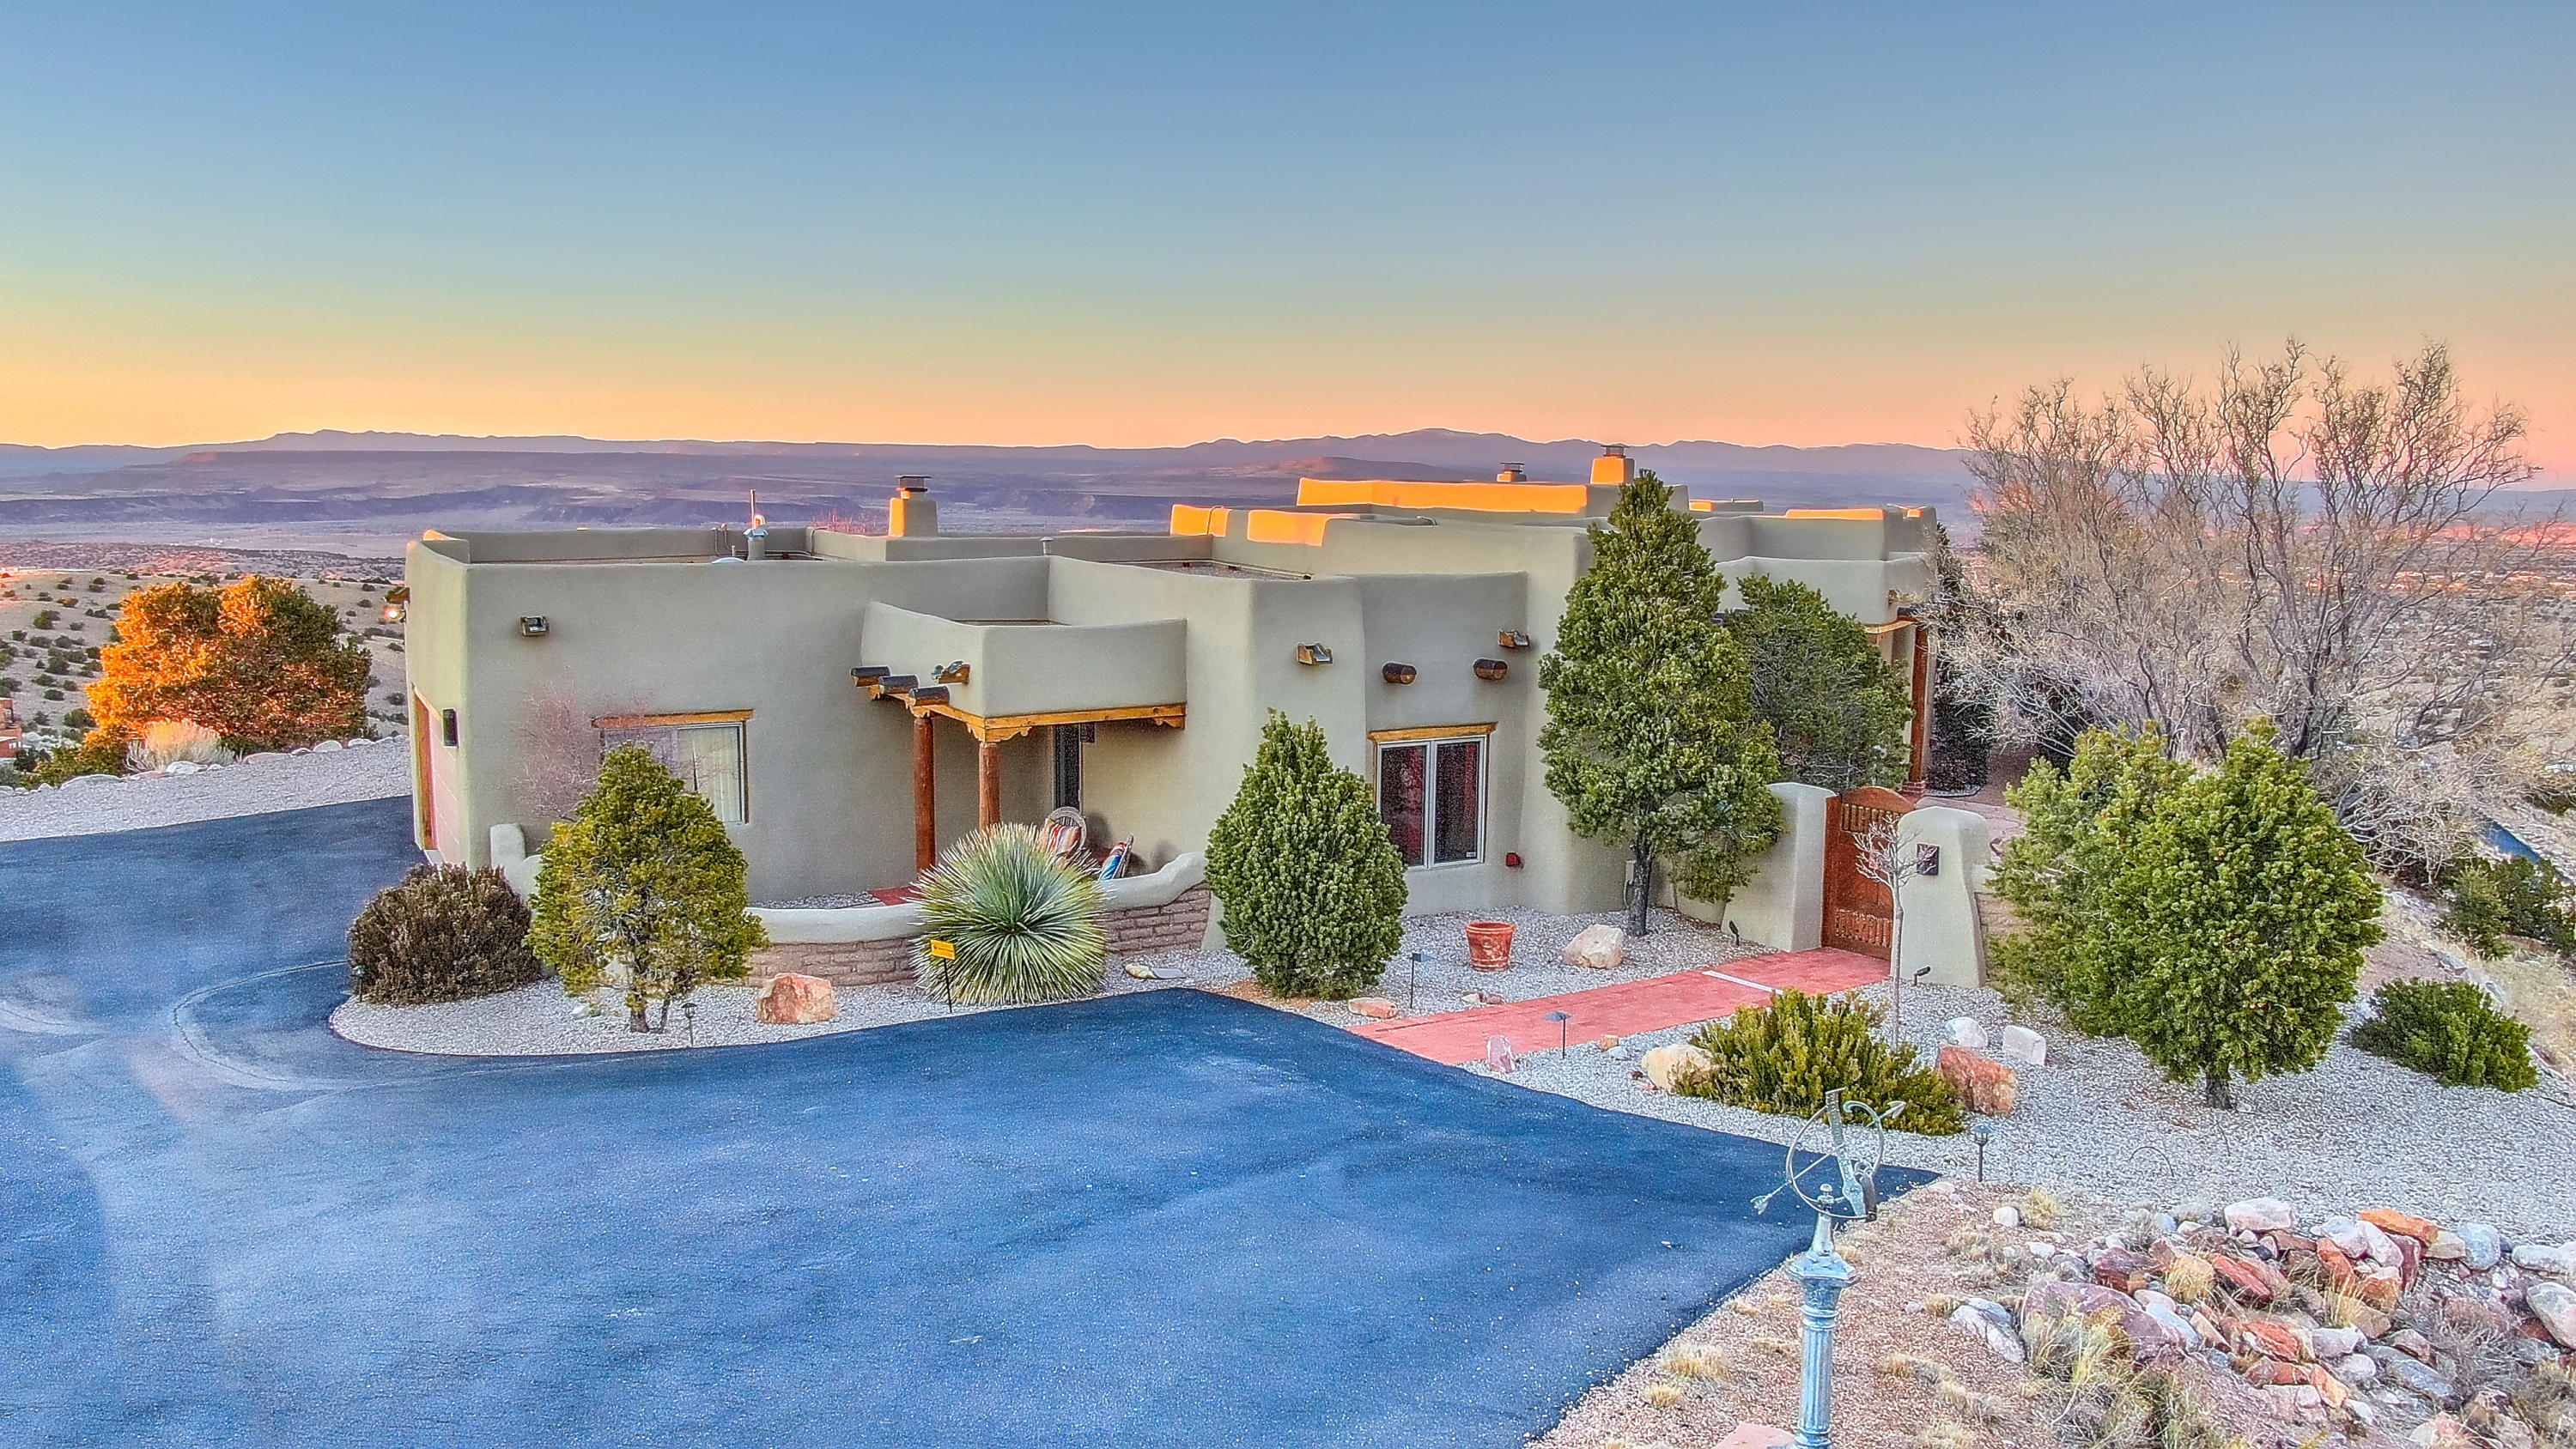 Placitas Pueblo Perfection! Exclusive Overlook subdivision w/dramatic east/west setting showcasing incredible natural light, world class vistas of the Rio Grande valley & mesas, Jemez & Cabezon mtns and the high desert hills that name the address. The summit of Placitas living inside & out adorned w/rich, authentic Santa Fe style & finishes. Built by master builder Ed Paschich and maintained w/huge pride of ownership with major updates/upgrades. One level excellence featuring attached guest qrtrs, mltple living & dining areas, real chef's kitchen and THEE master ste that will take your breath away. Outside boasts front & back private crtyrds, Kiva fp, cowboy kitchen, hot tub & two water features- never ending views everywhere! Incredible hacienda w/great access to I-25, shopping and more